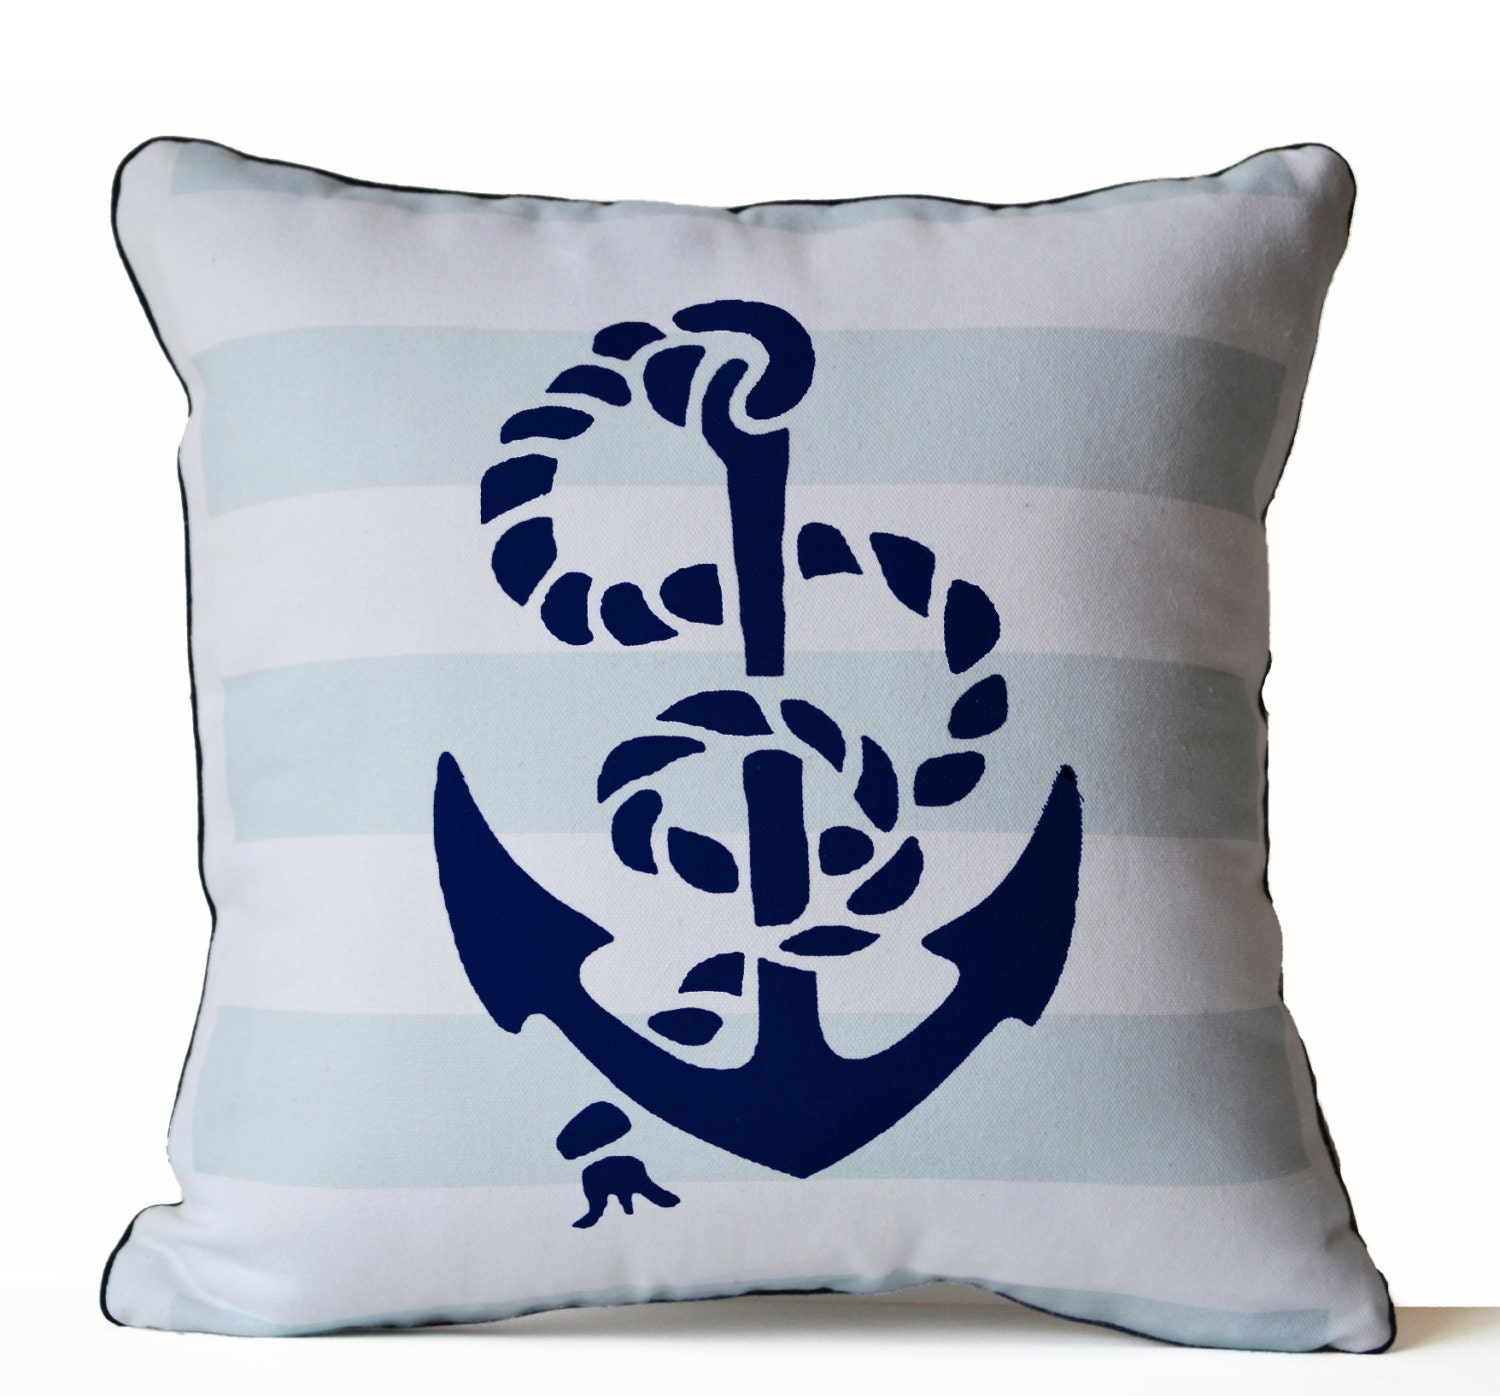 Nautical Coastal Throw Pillows : Throw Pillow Cover Anchor Pillow Nautical Oceanic Beach